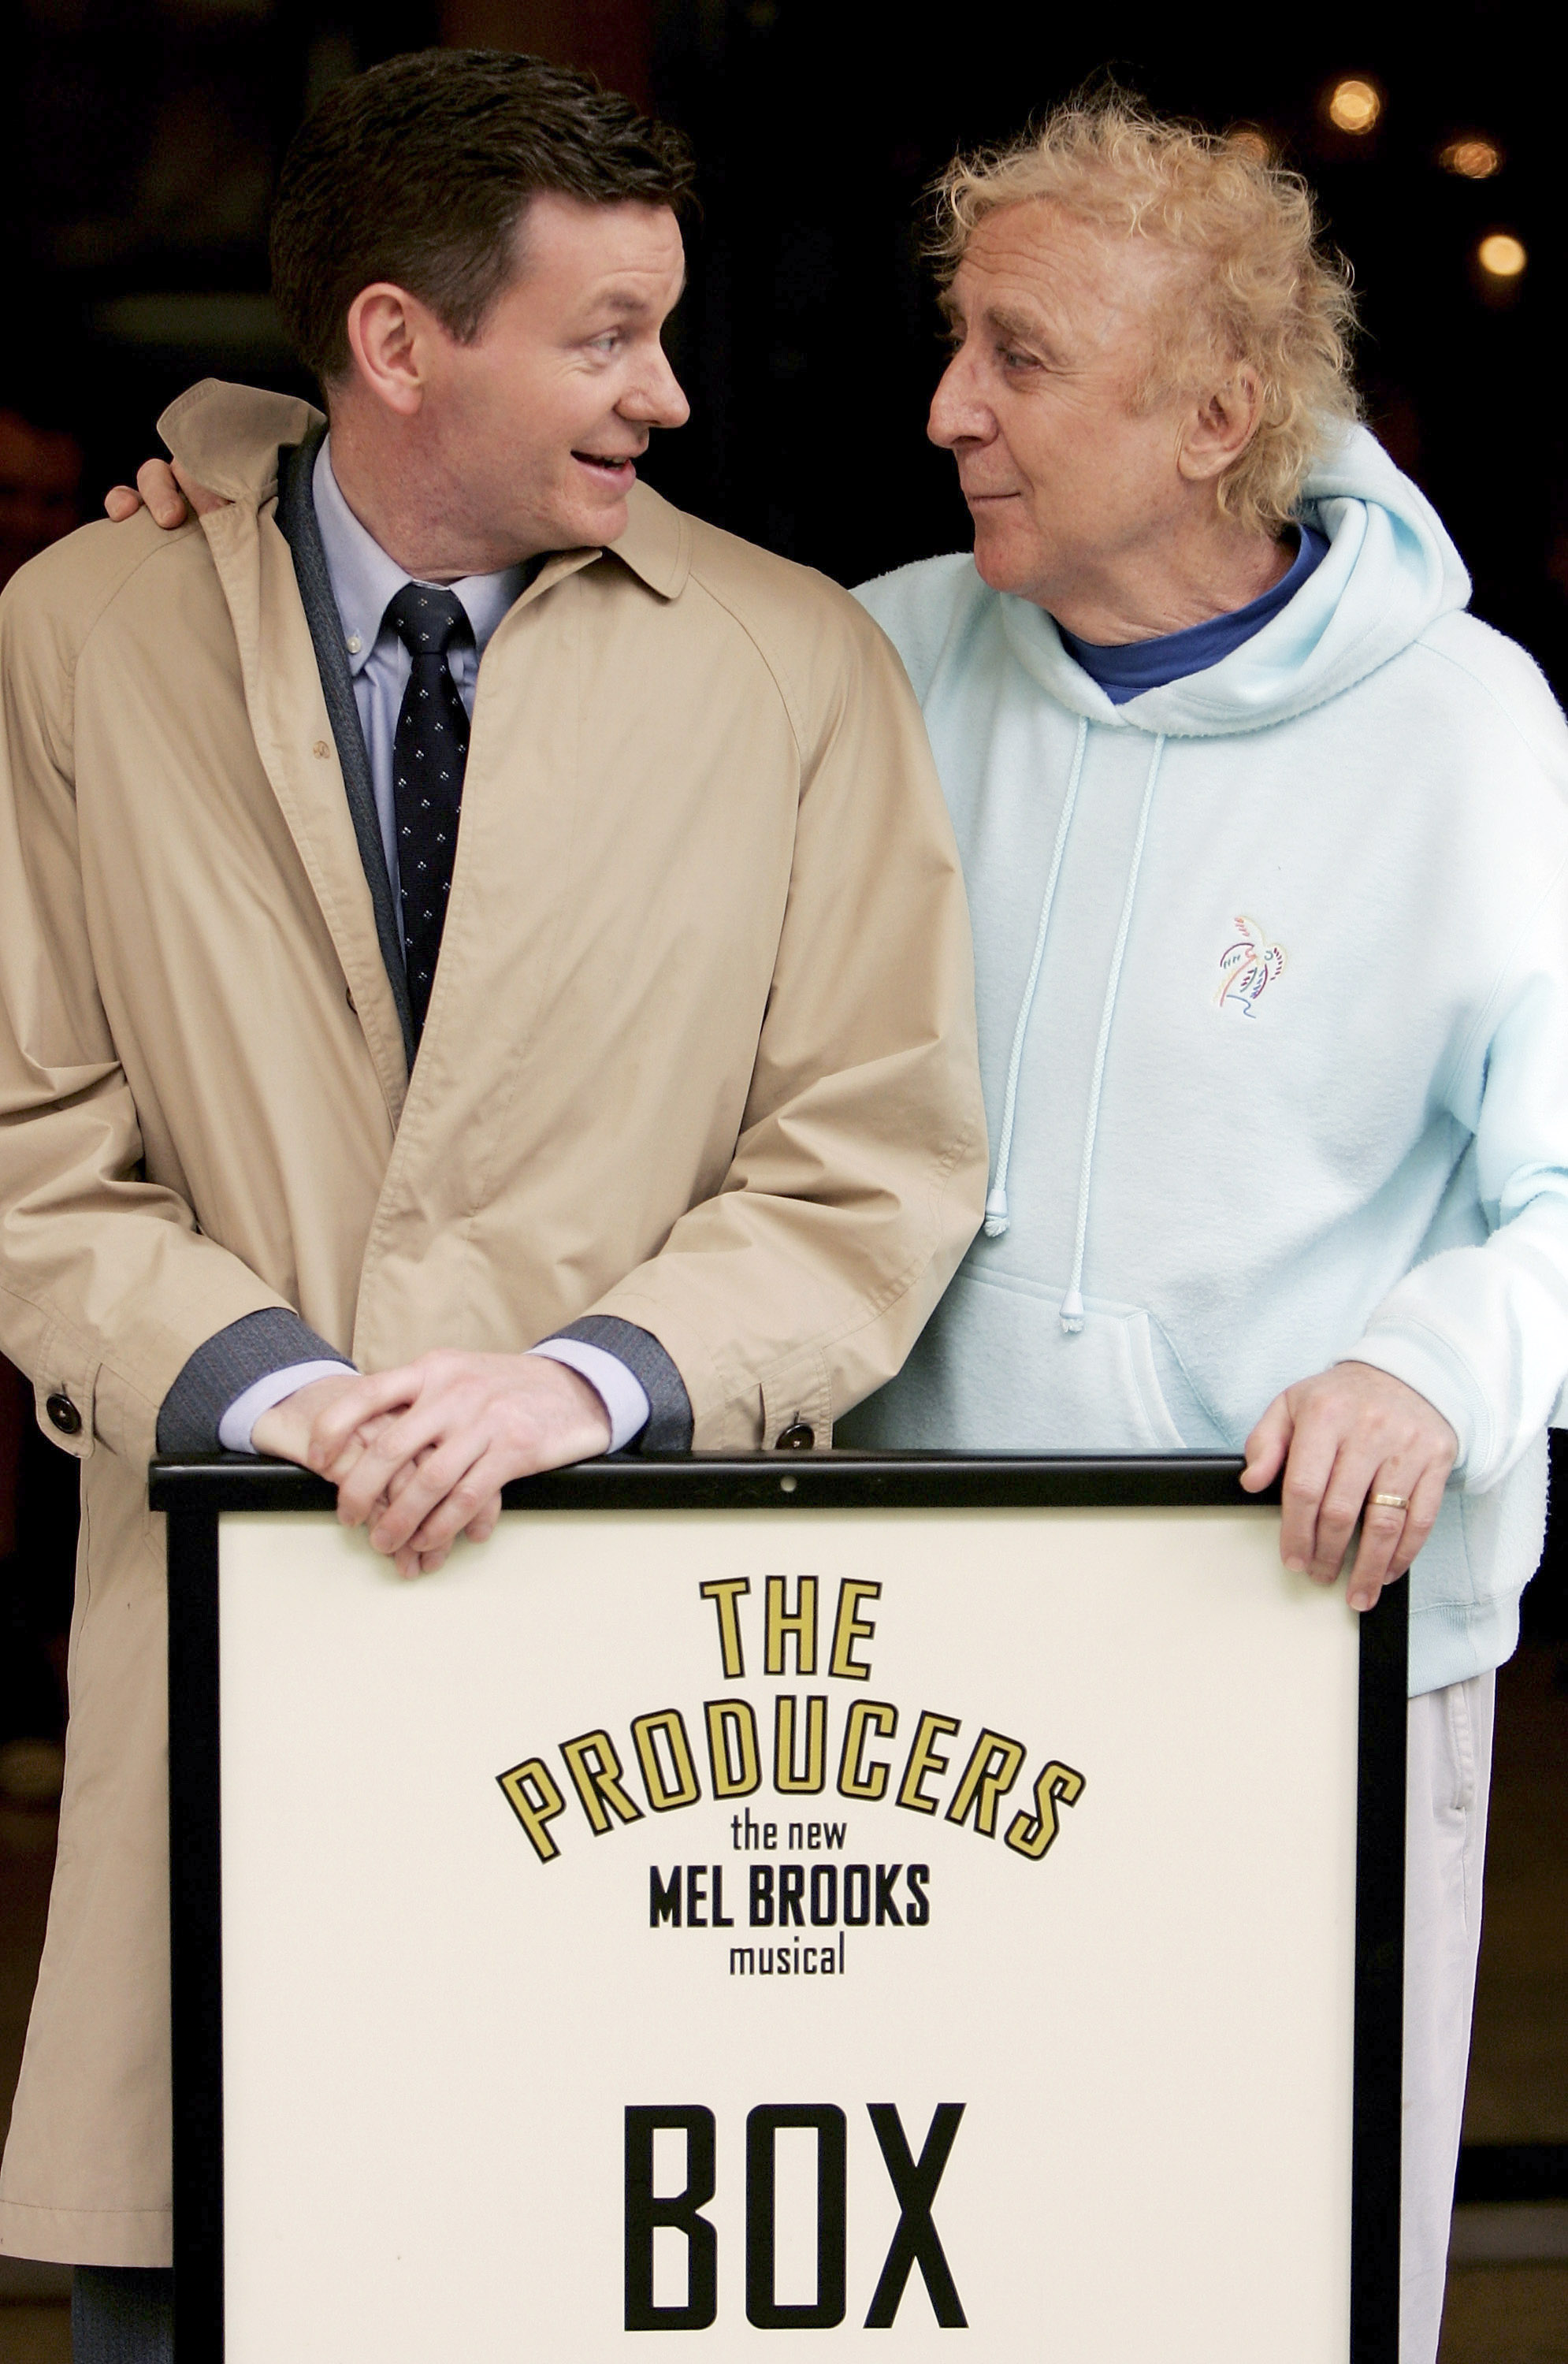 Actors Gene Wilder and John Gordon Sinclair pose on the steps of The Producers' theatrical home, the Theatre Royal, Drury Lane, on June 6, 2005 in London, England. The stars played the role of the current and former Leo Bloom, with Wilder starring in the 1968 film version and Sinclair presently on the West End stage acting the same role. (Getty)